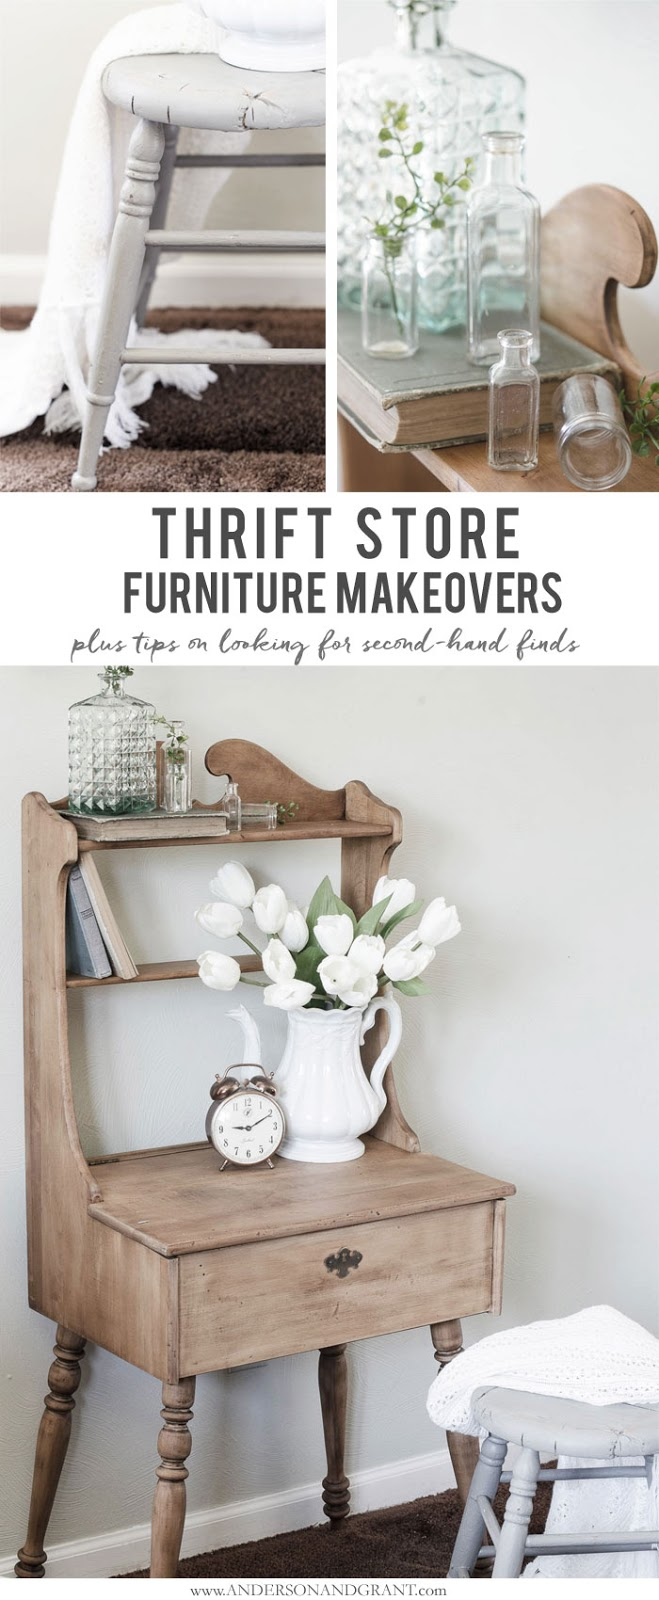 Farmhouse Style Desk And Stool Anderson Grant